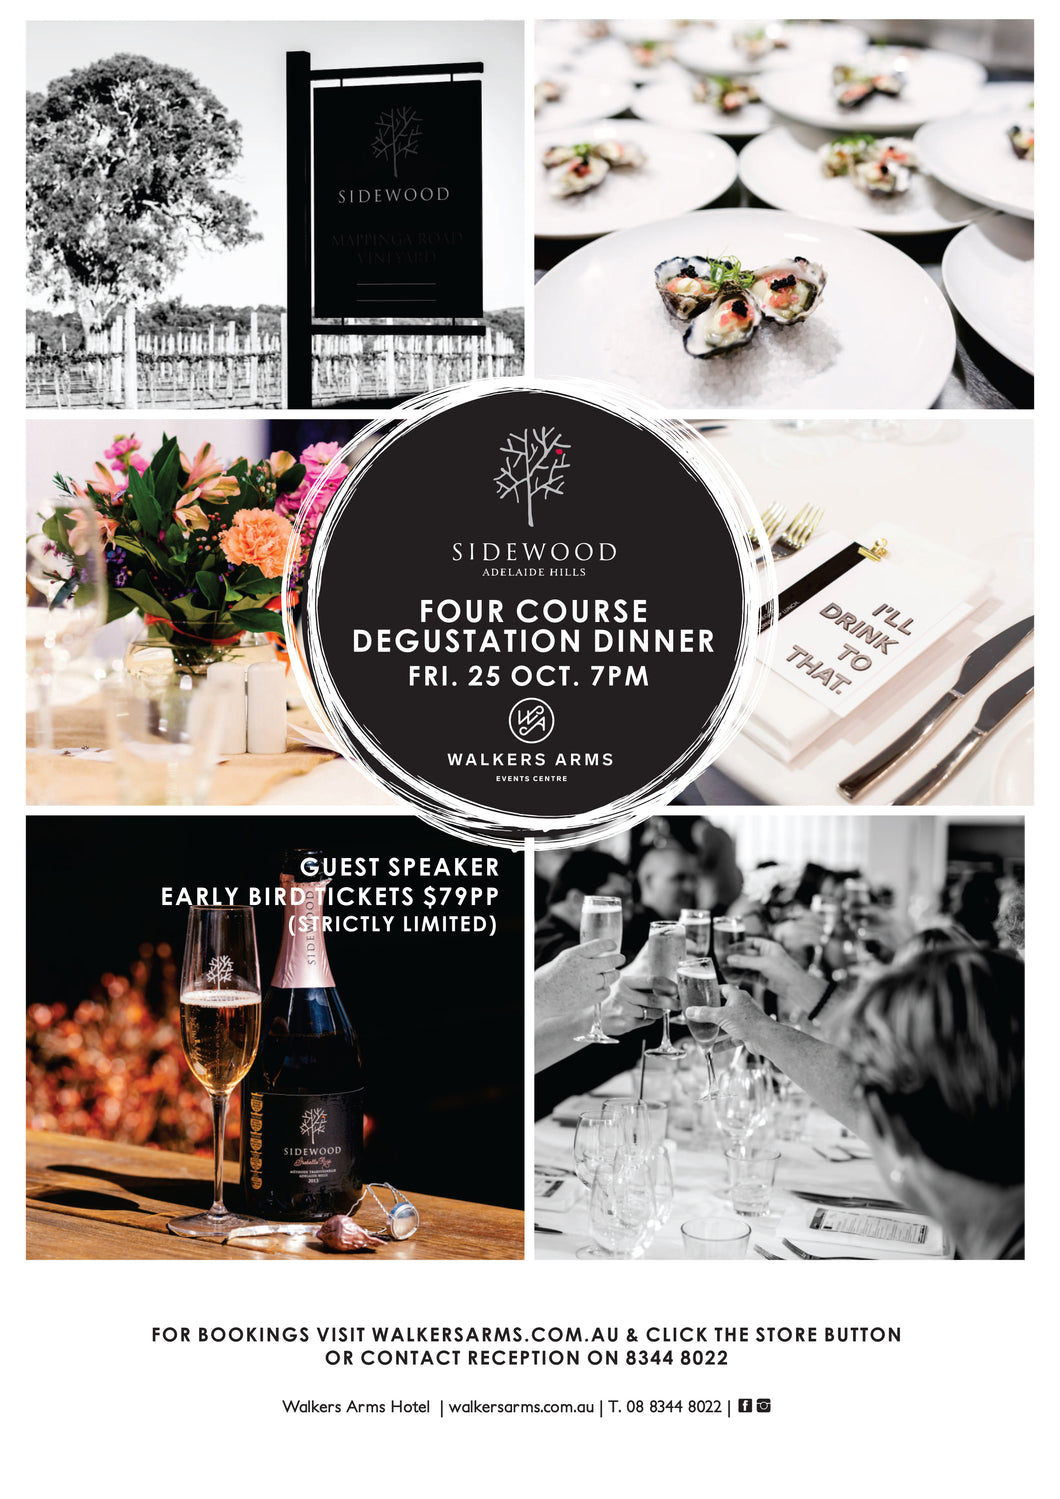 Walkers Arms - Sidewood Estate Degustation Dinner Oct 25 - EARLY BIRD